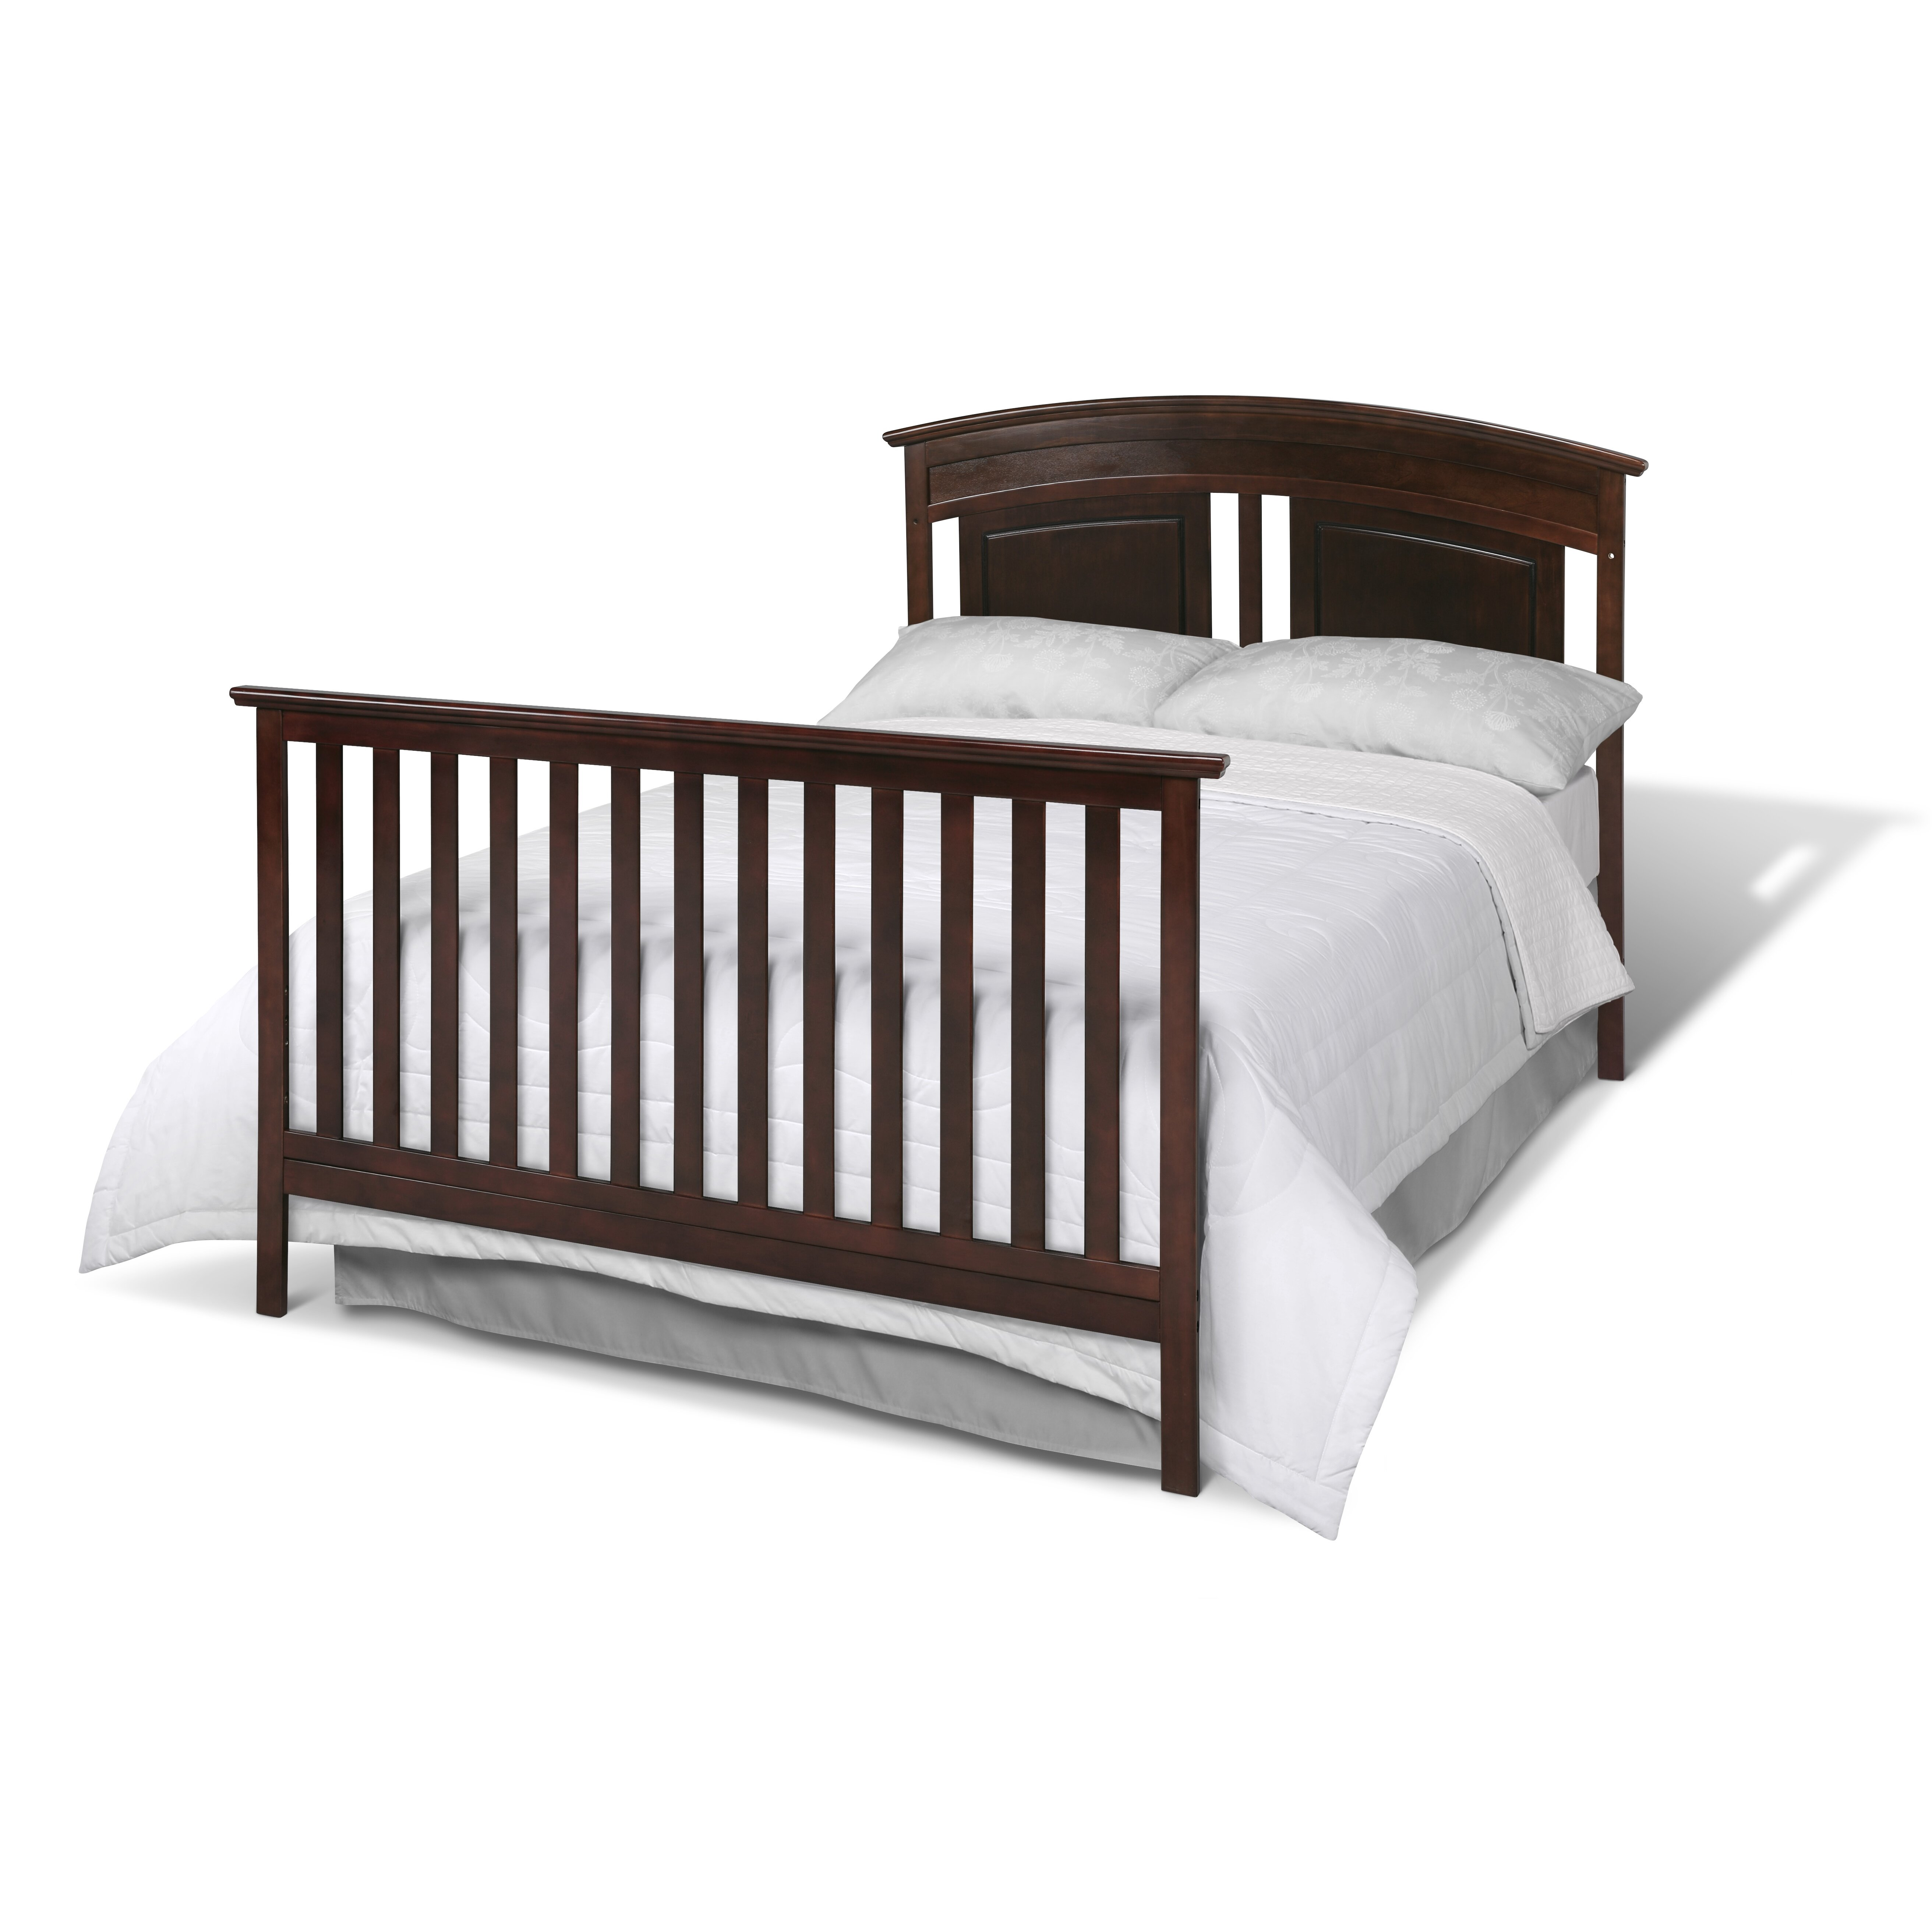 thomasville kids majestic 4 in 1 convertible crib baby nursery furniture relax emma crib